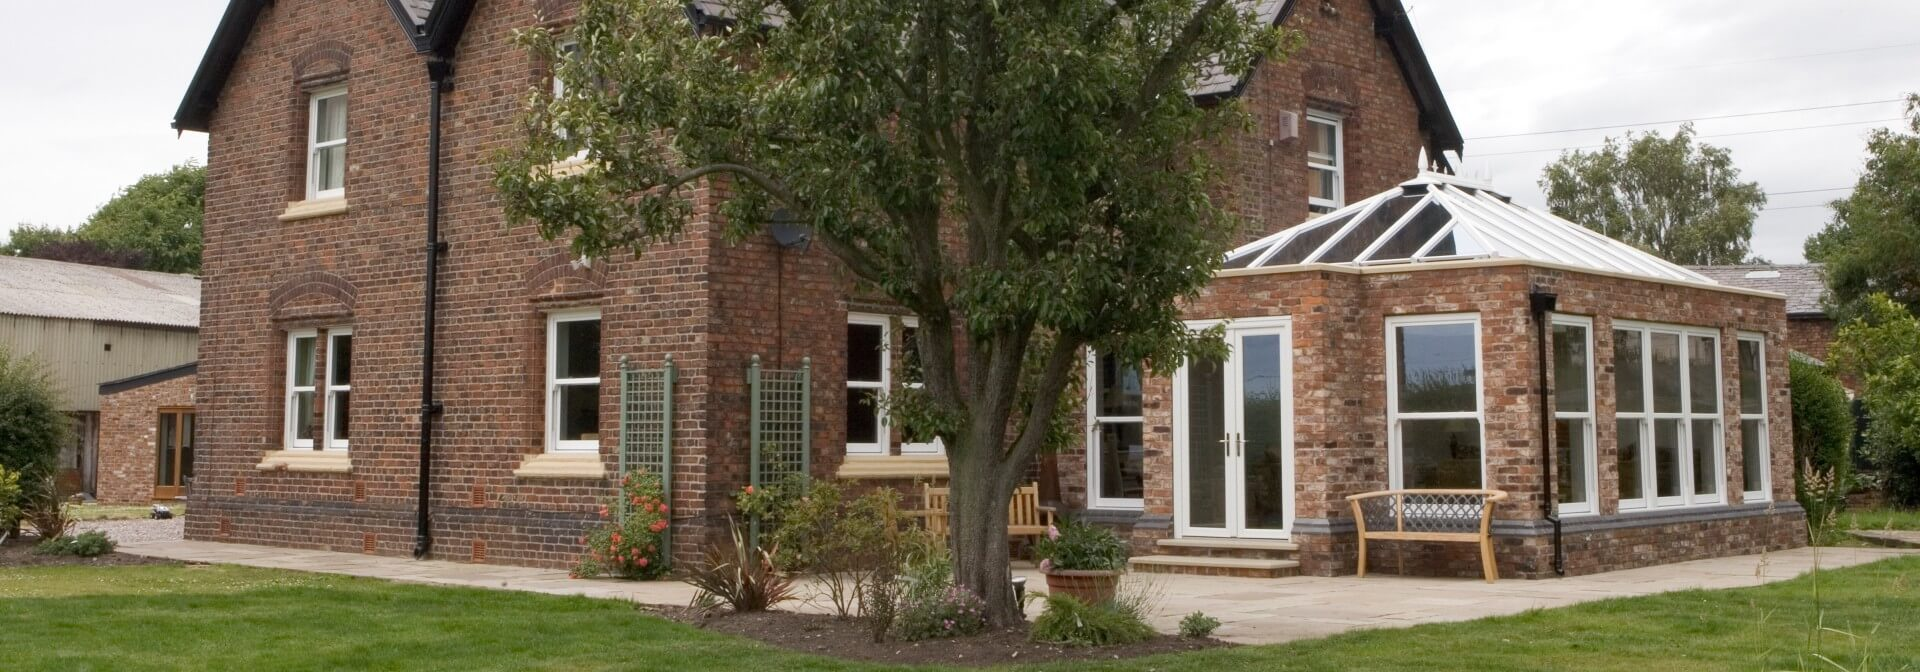 A brick orangery extension with glass roof installed onto large property